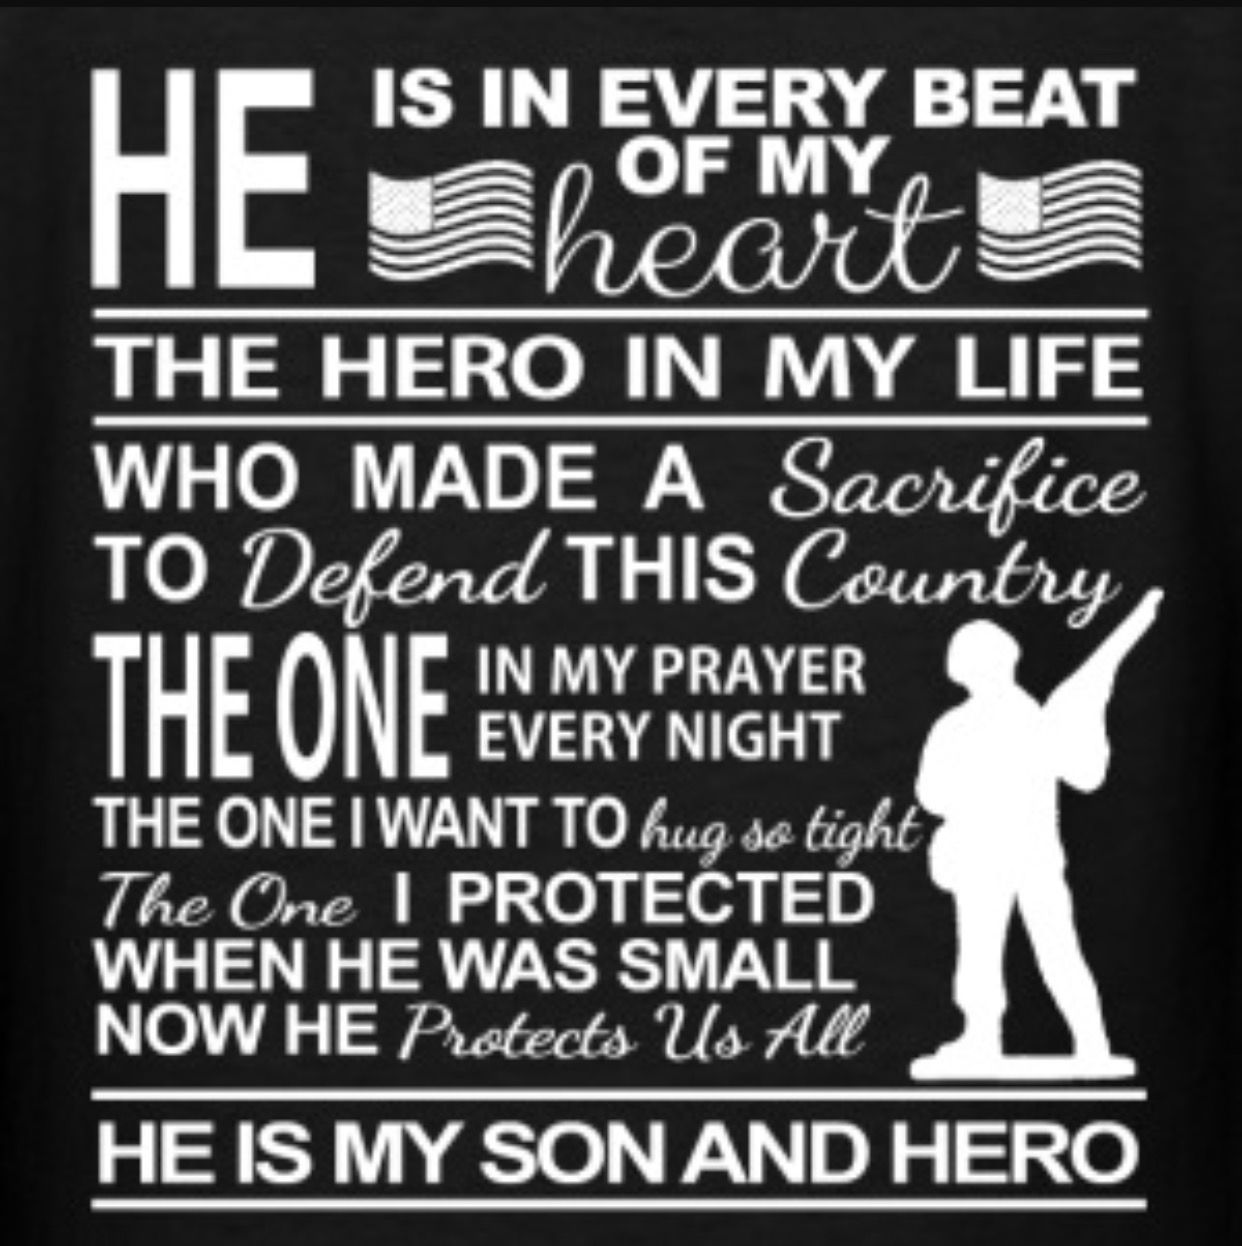 My brother my hero | Army Love | Army mom quotes, Army ...